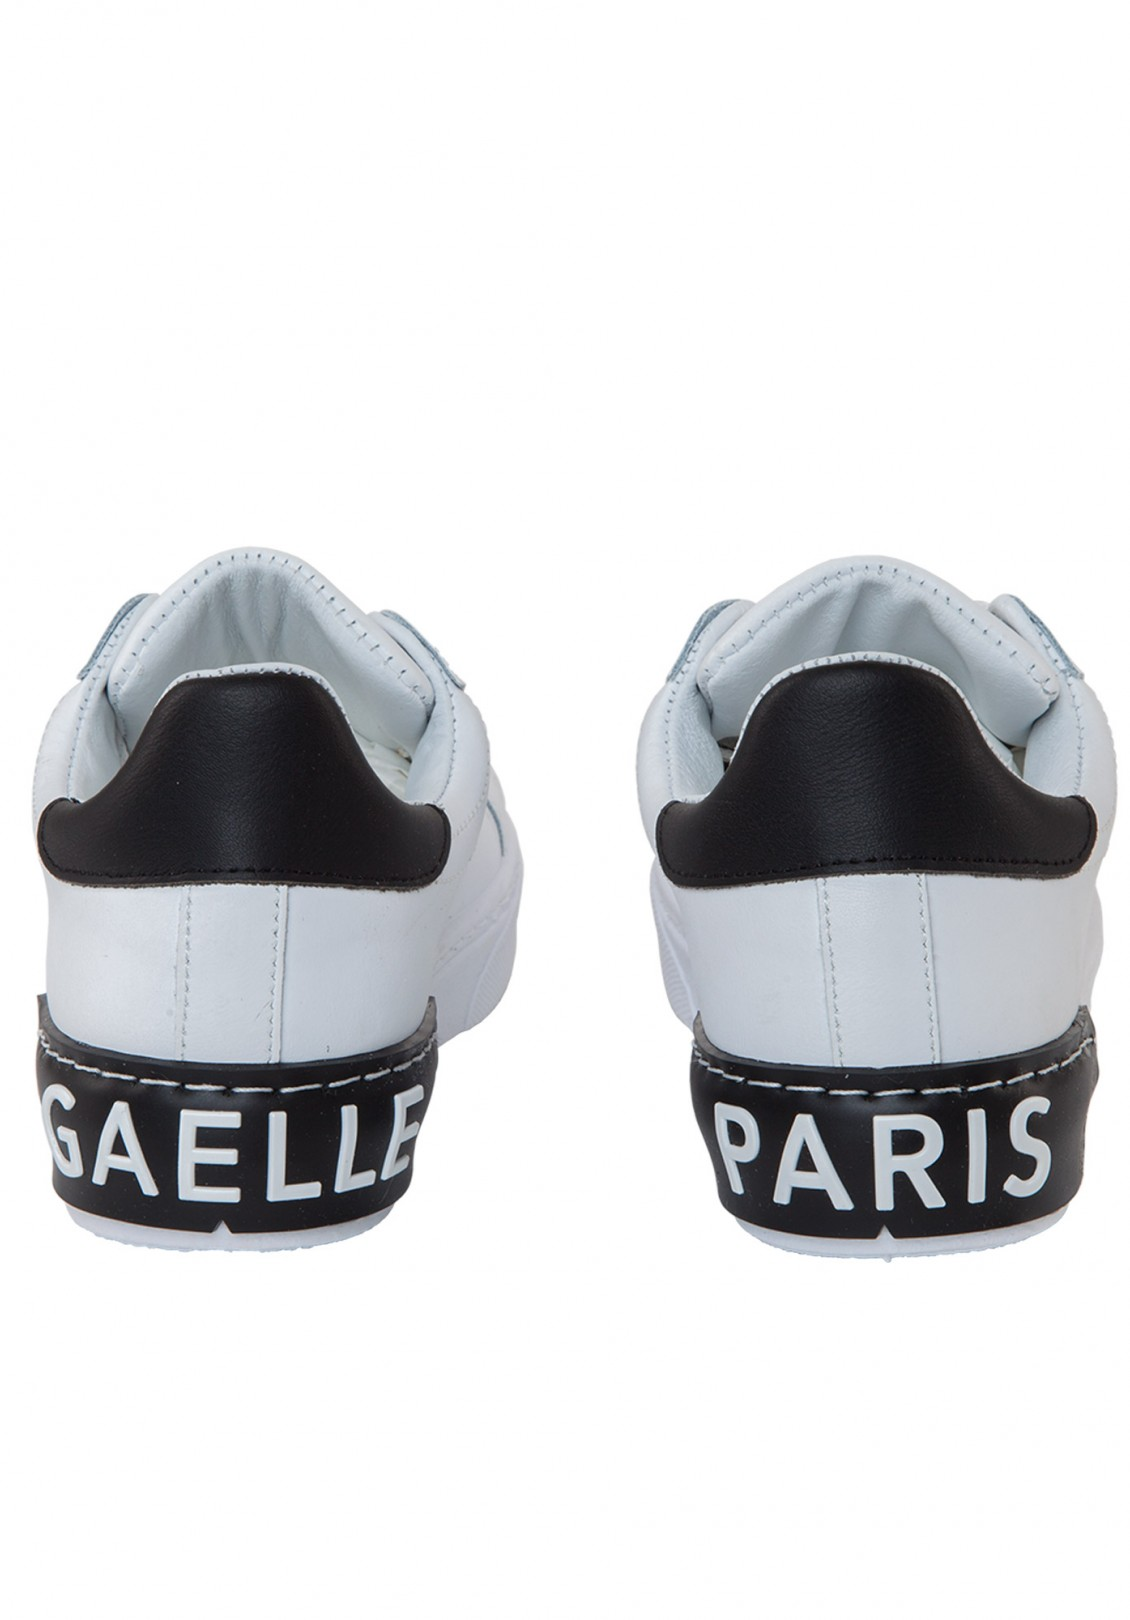 SNEAKERS - GBDA1310 - GAELLE PARIS